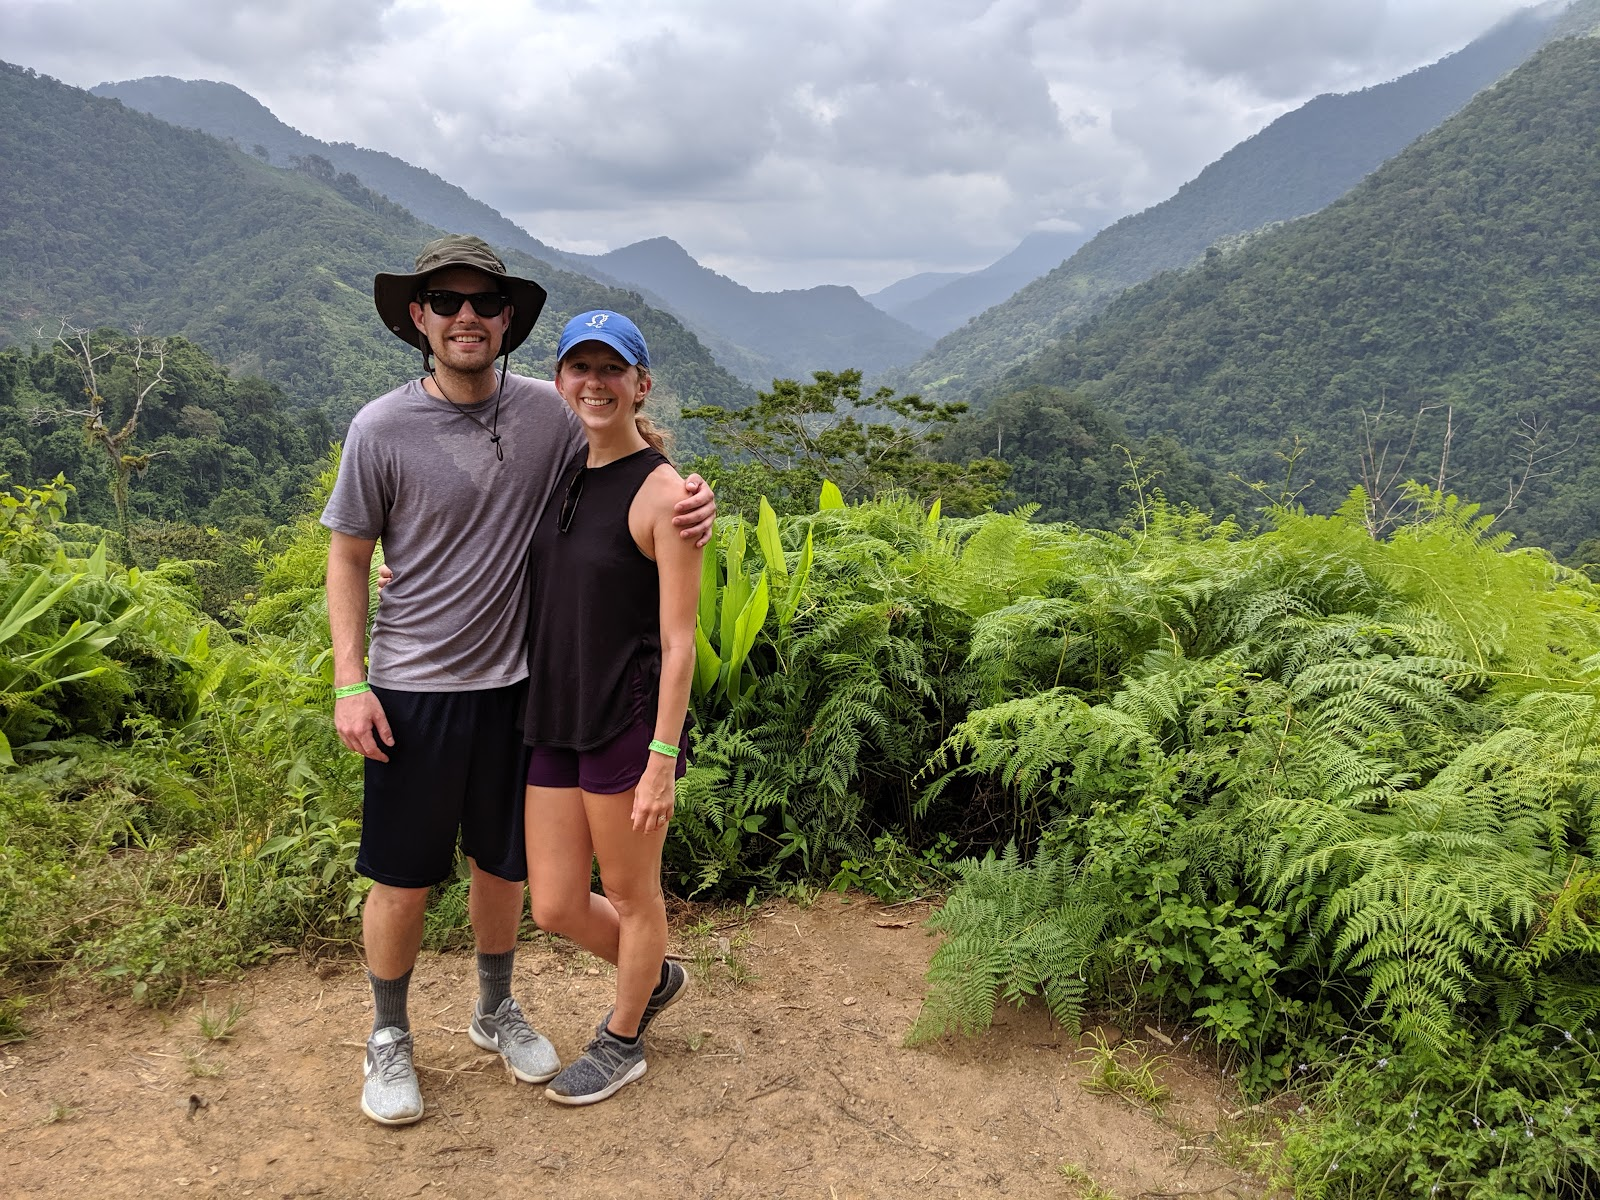 Brandon and Erin during the Lost City Trek in Colombia.